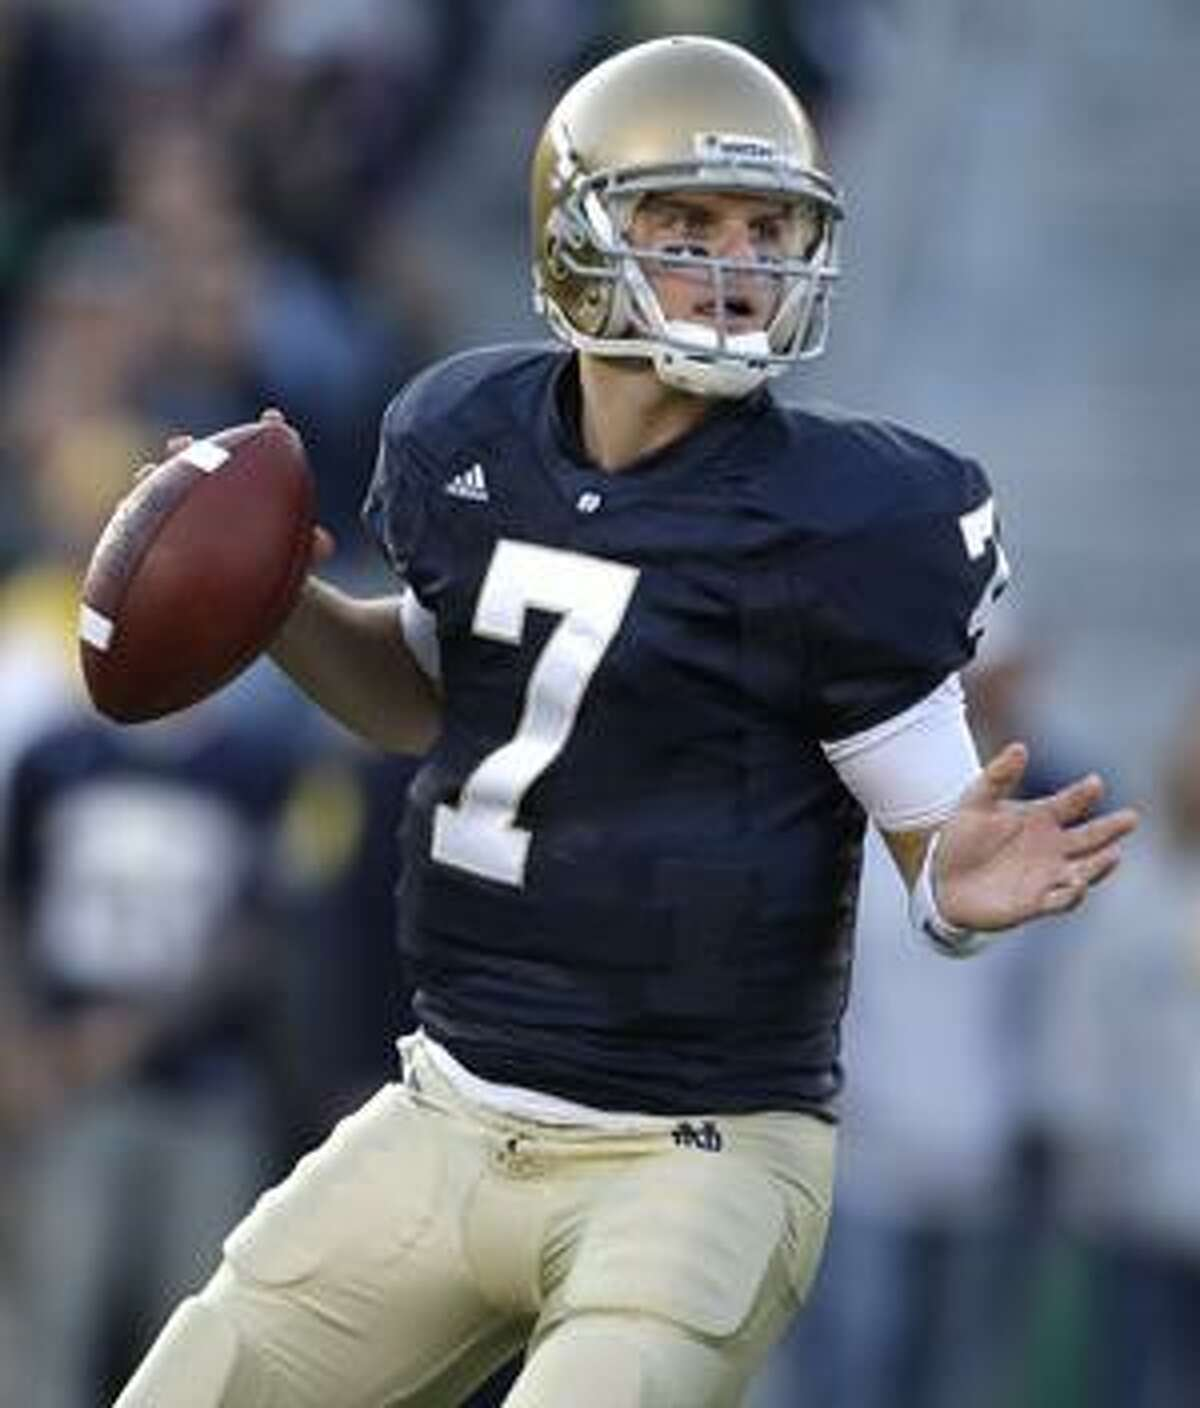 FILE - In this Nov. 7, 2009, file photo, Notre Dame quarterback Jimmy Clausen (7) looks to pass during the third quarter of an NCAA college football game in South Bend, Ind. Clausen was picked by the Carolina Panthers. (AP Photo/Darron Cummings, File)